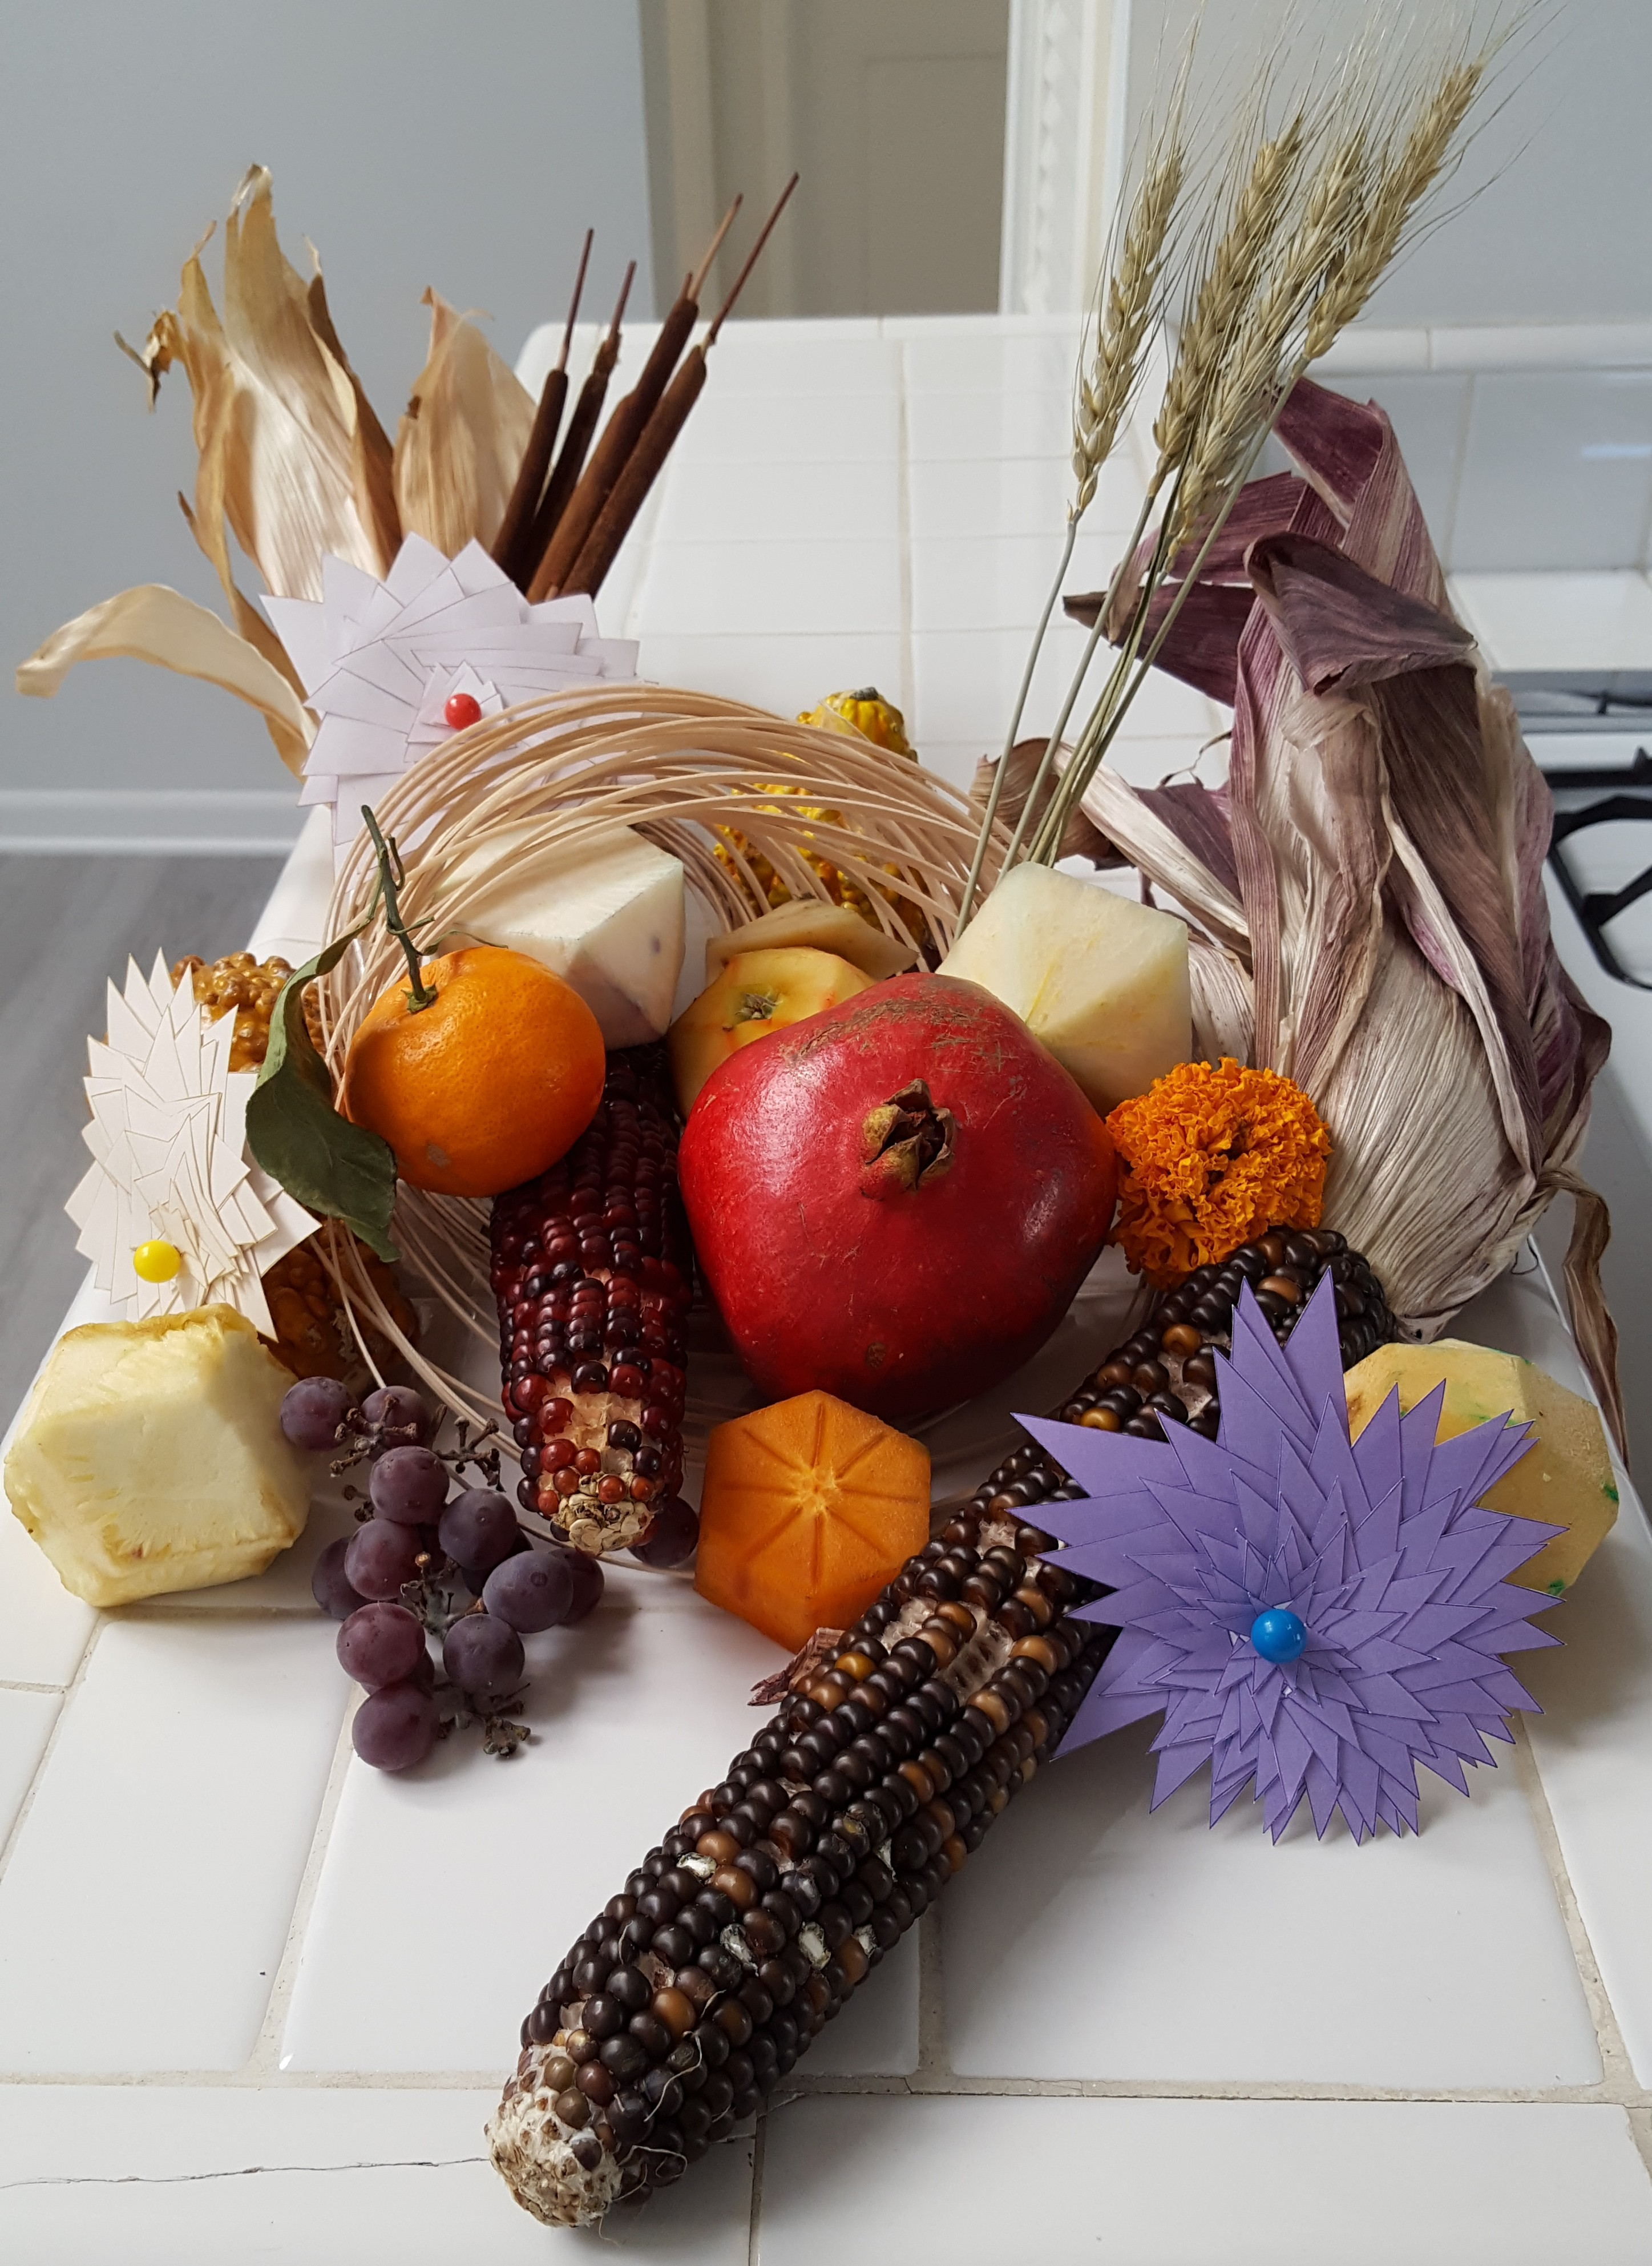 Happy Mathematical Thanksgiving from The National Museum of Mathematics